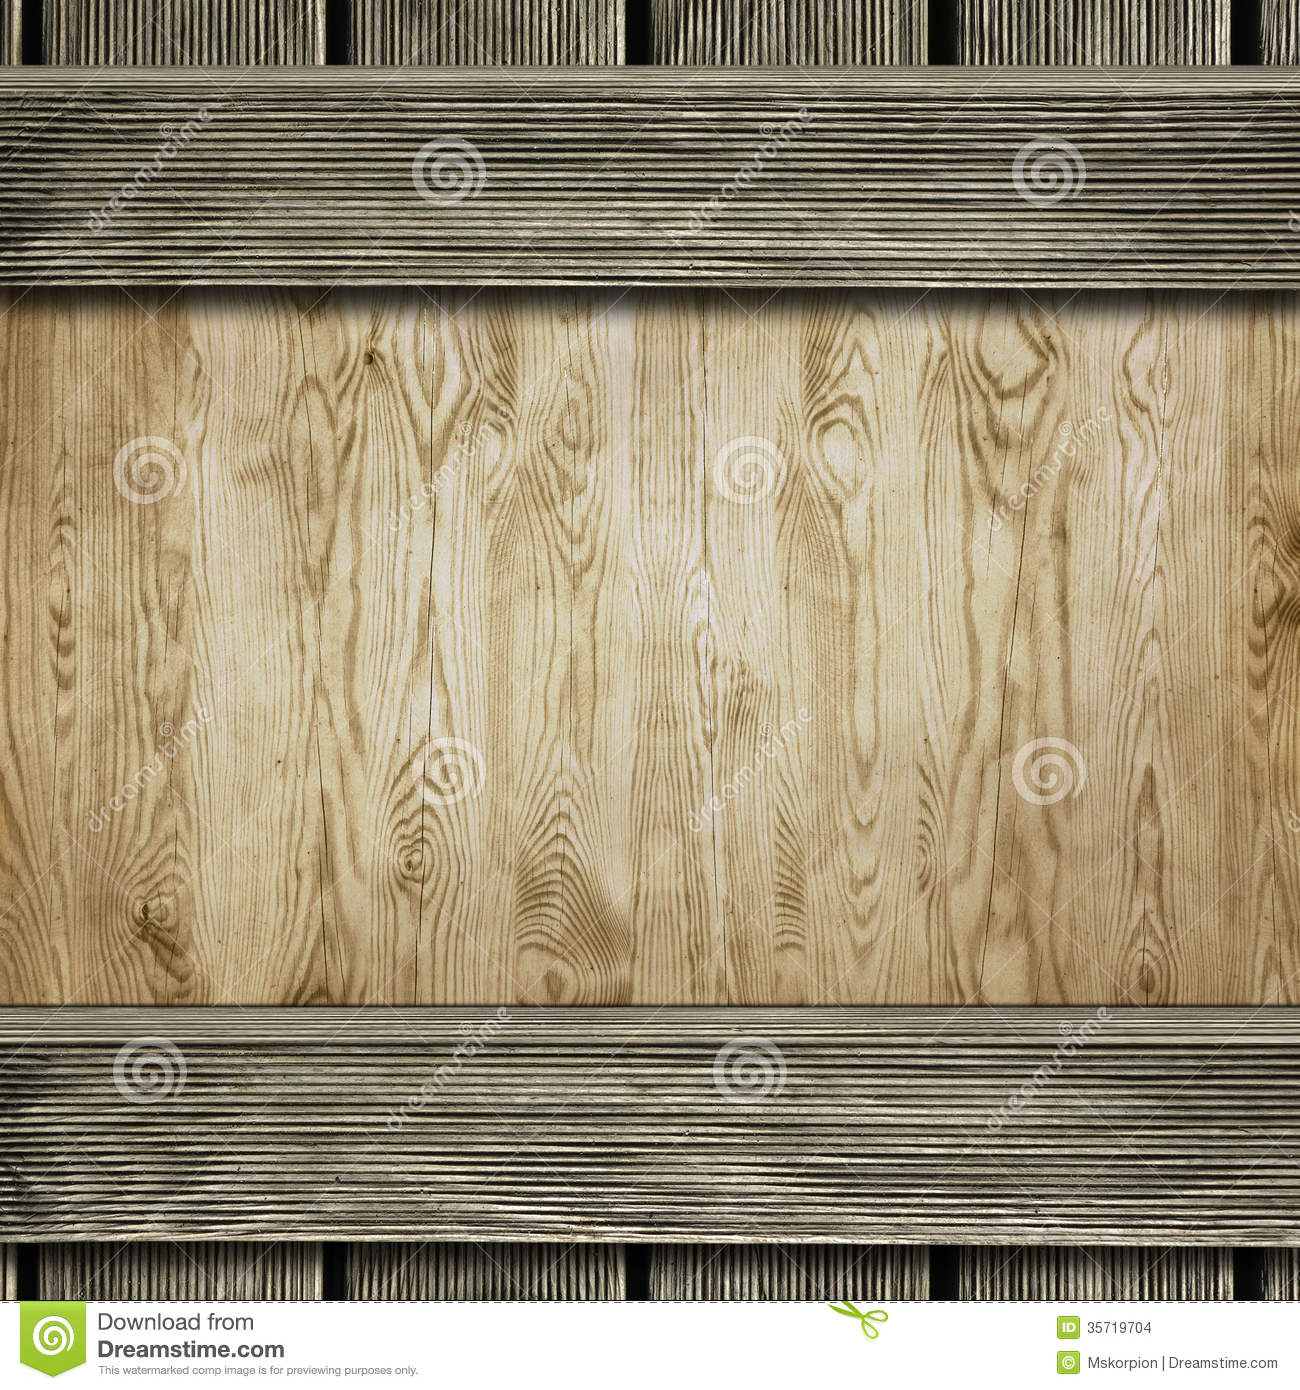 Wood Frame Texture : Vintage Frame Background Stock Images - Image: 35719704